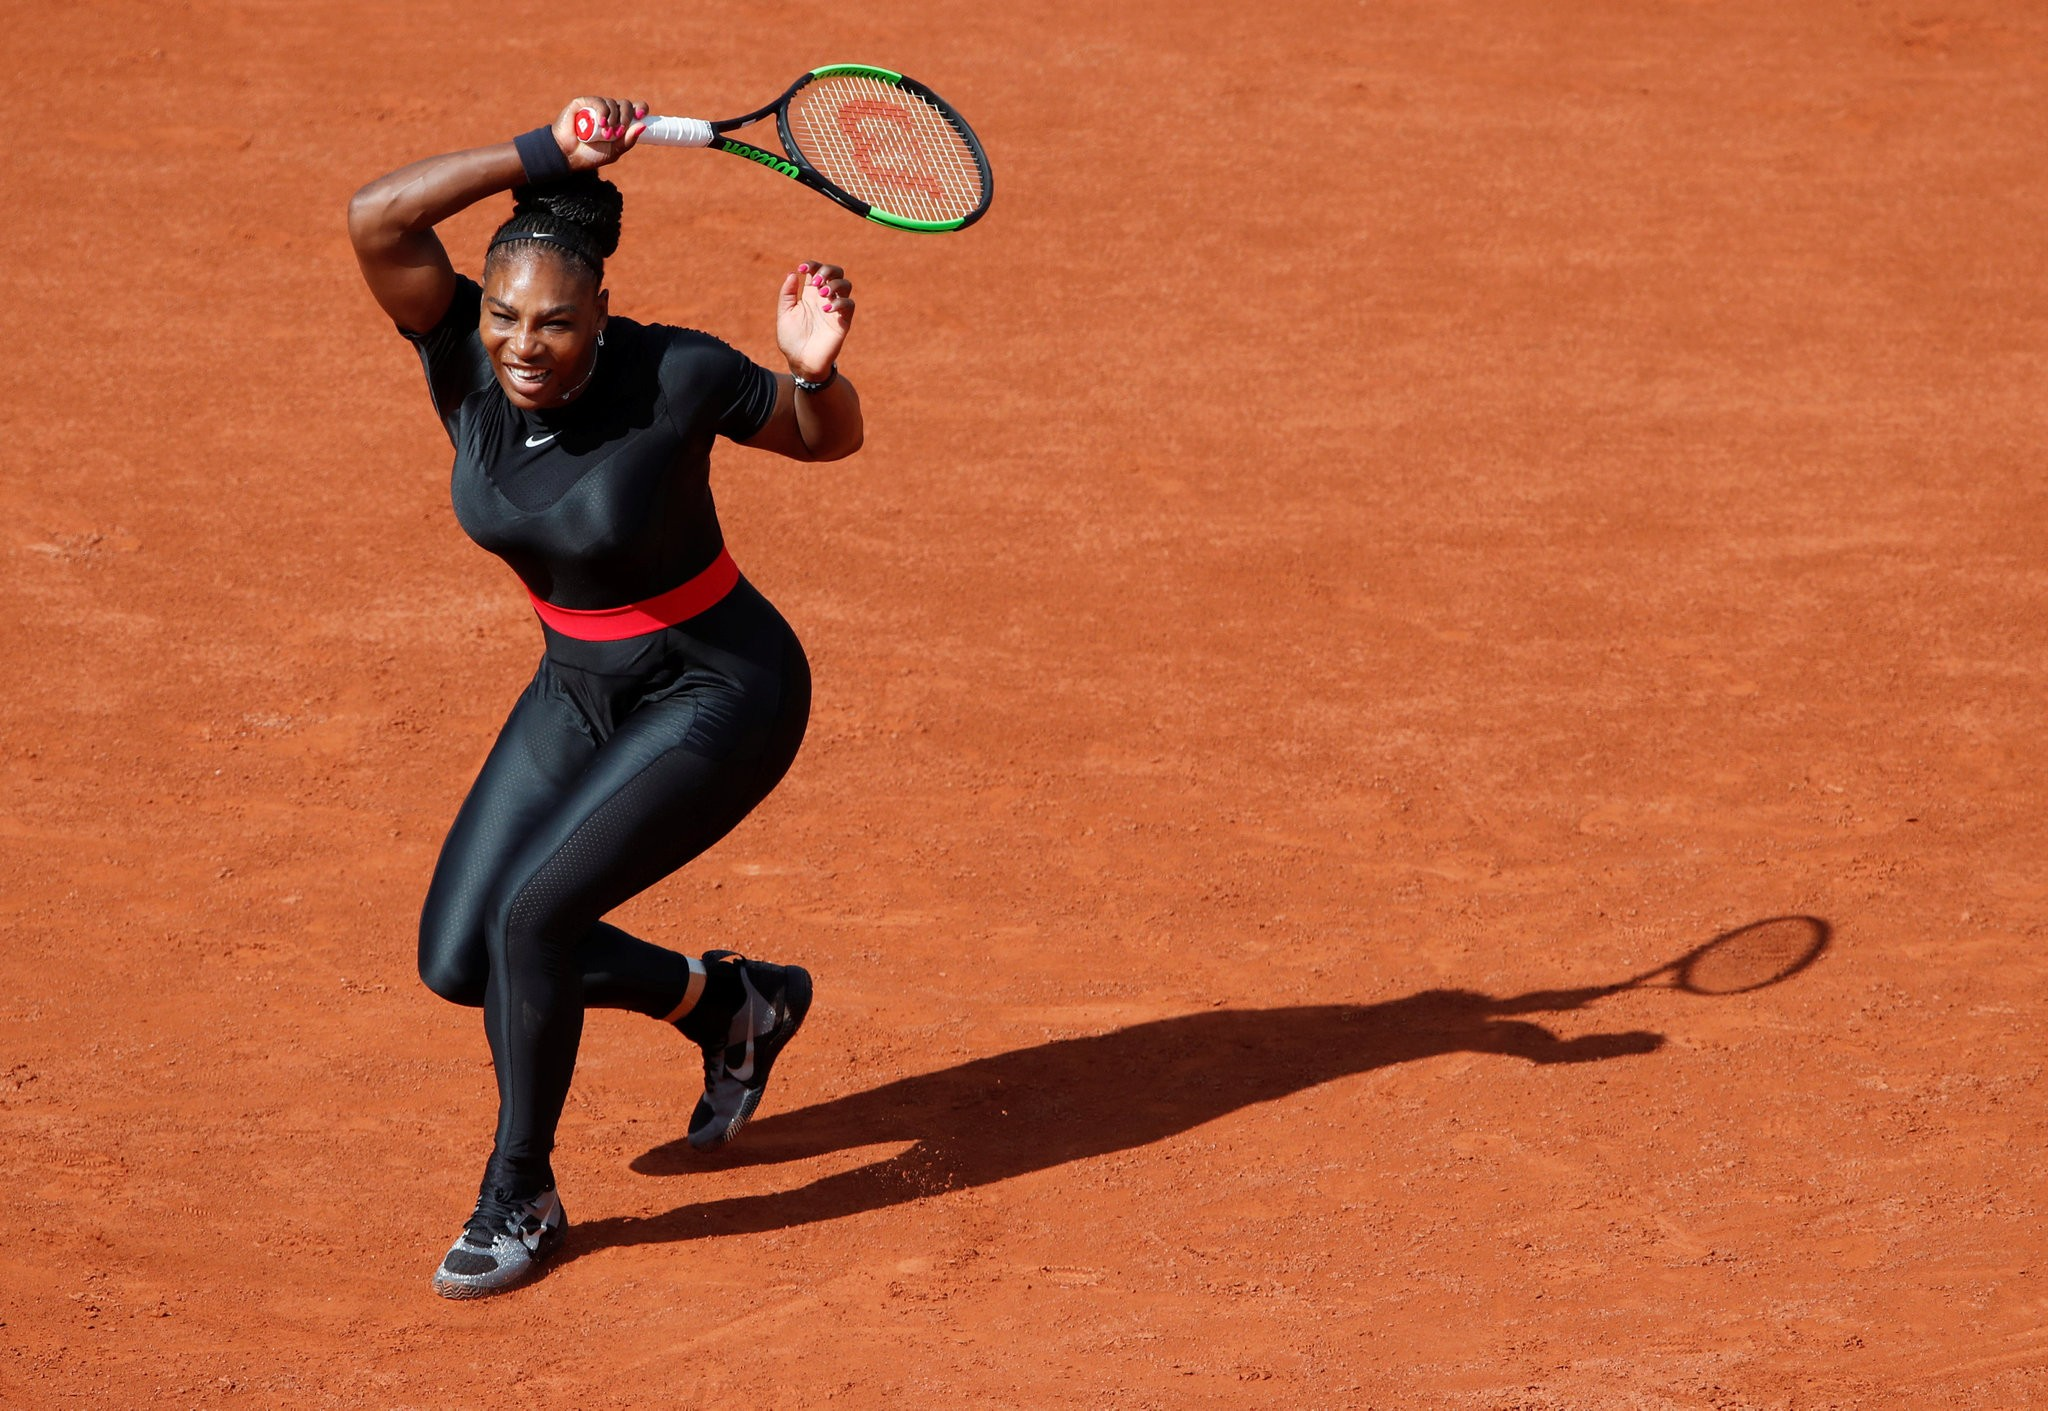 Serena Williams Wins in French Open